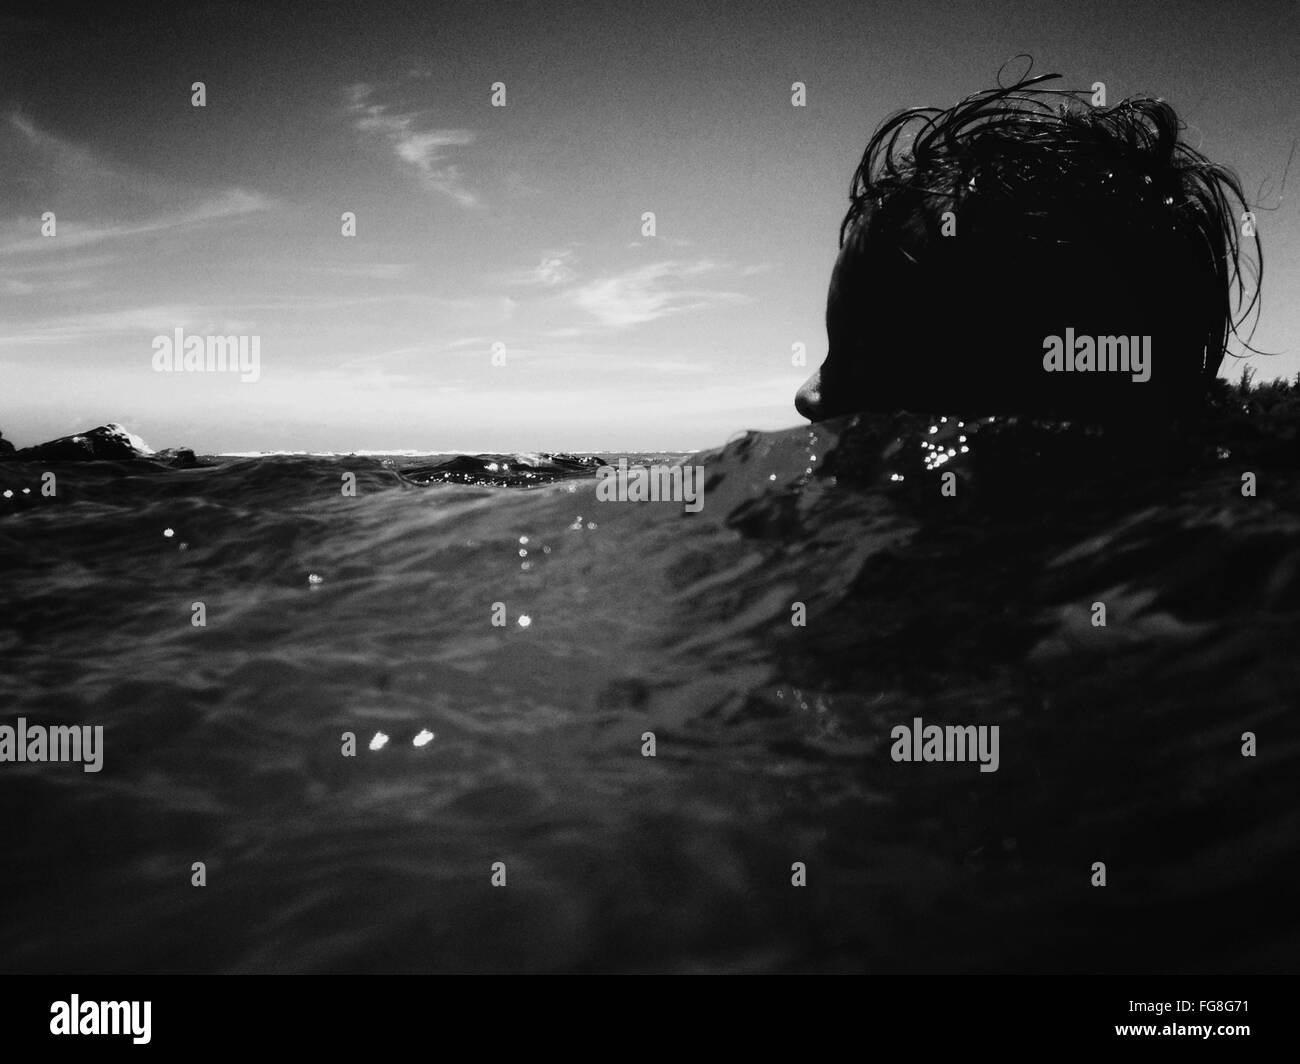 Surface Level Of Person In Sea - Stock Image